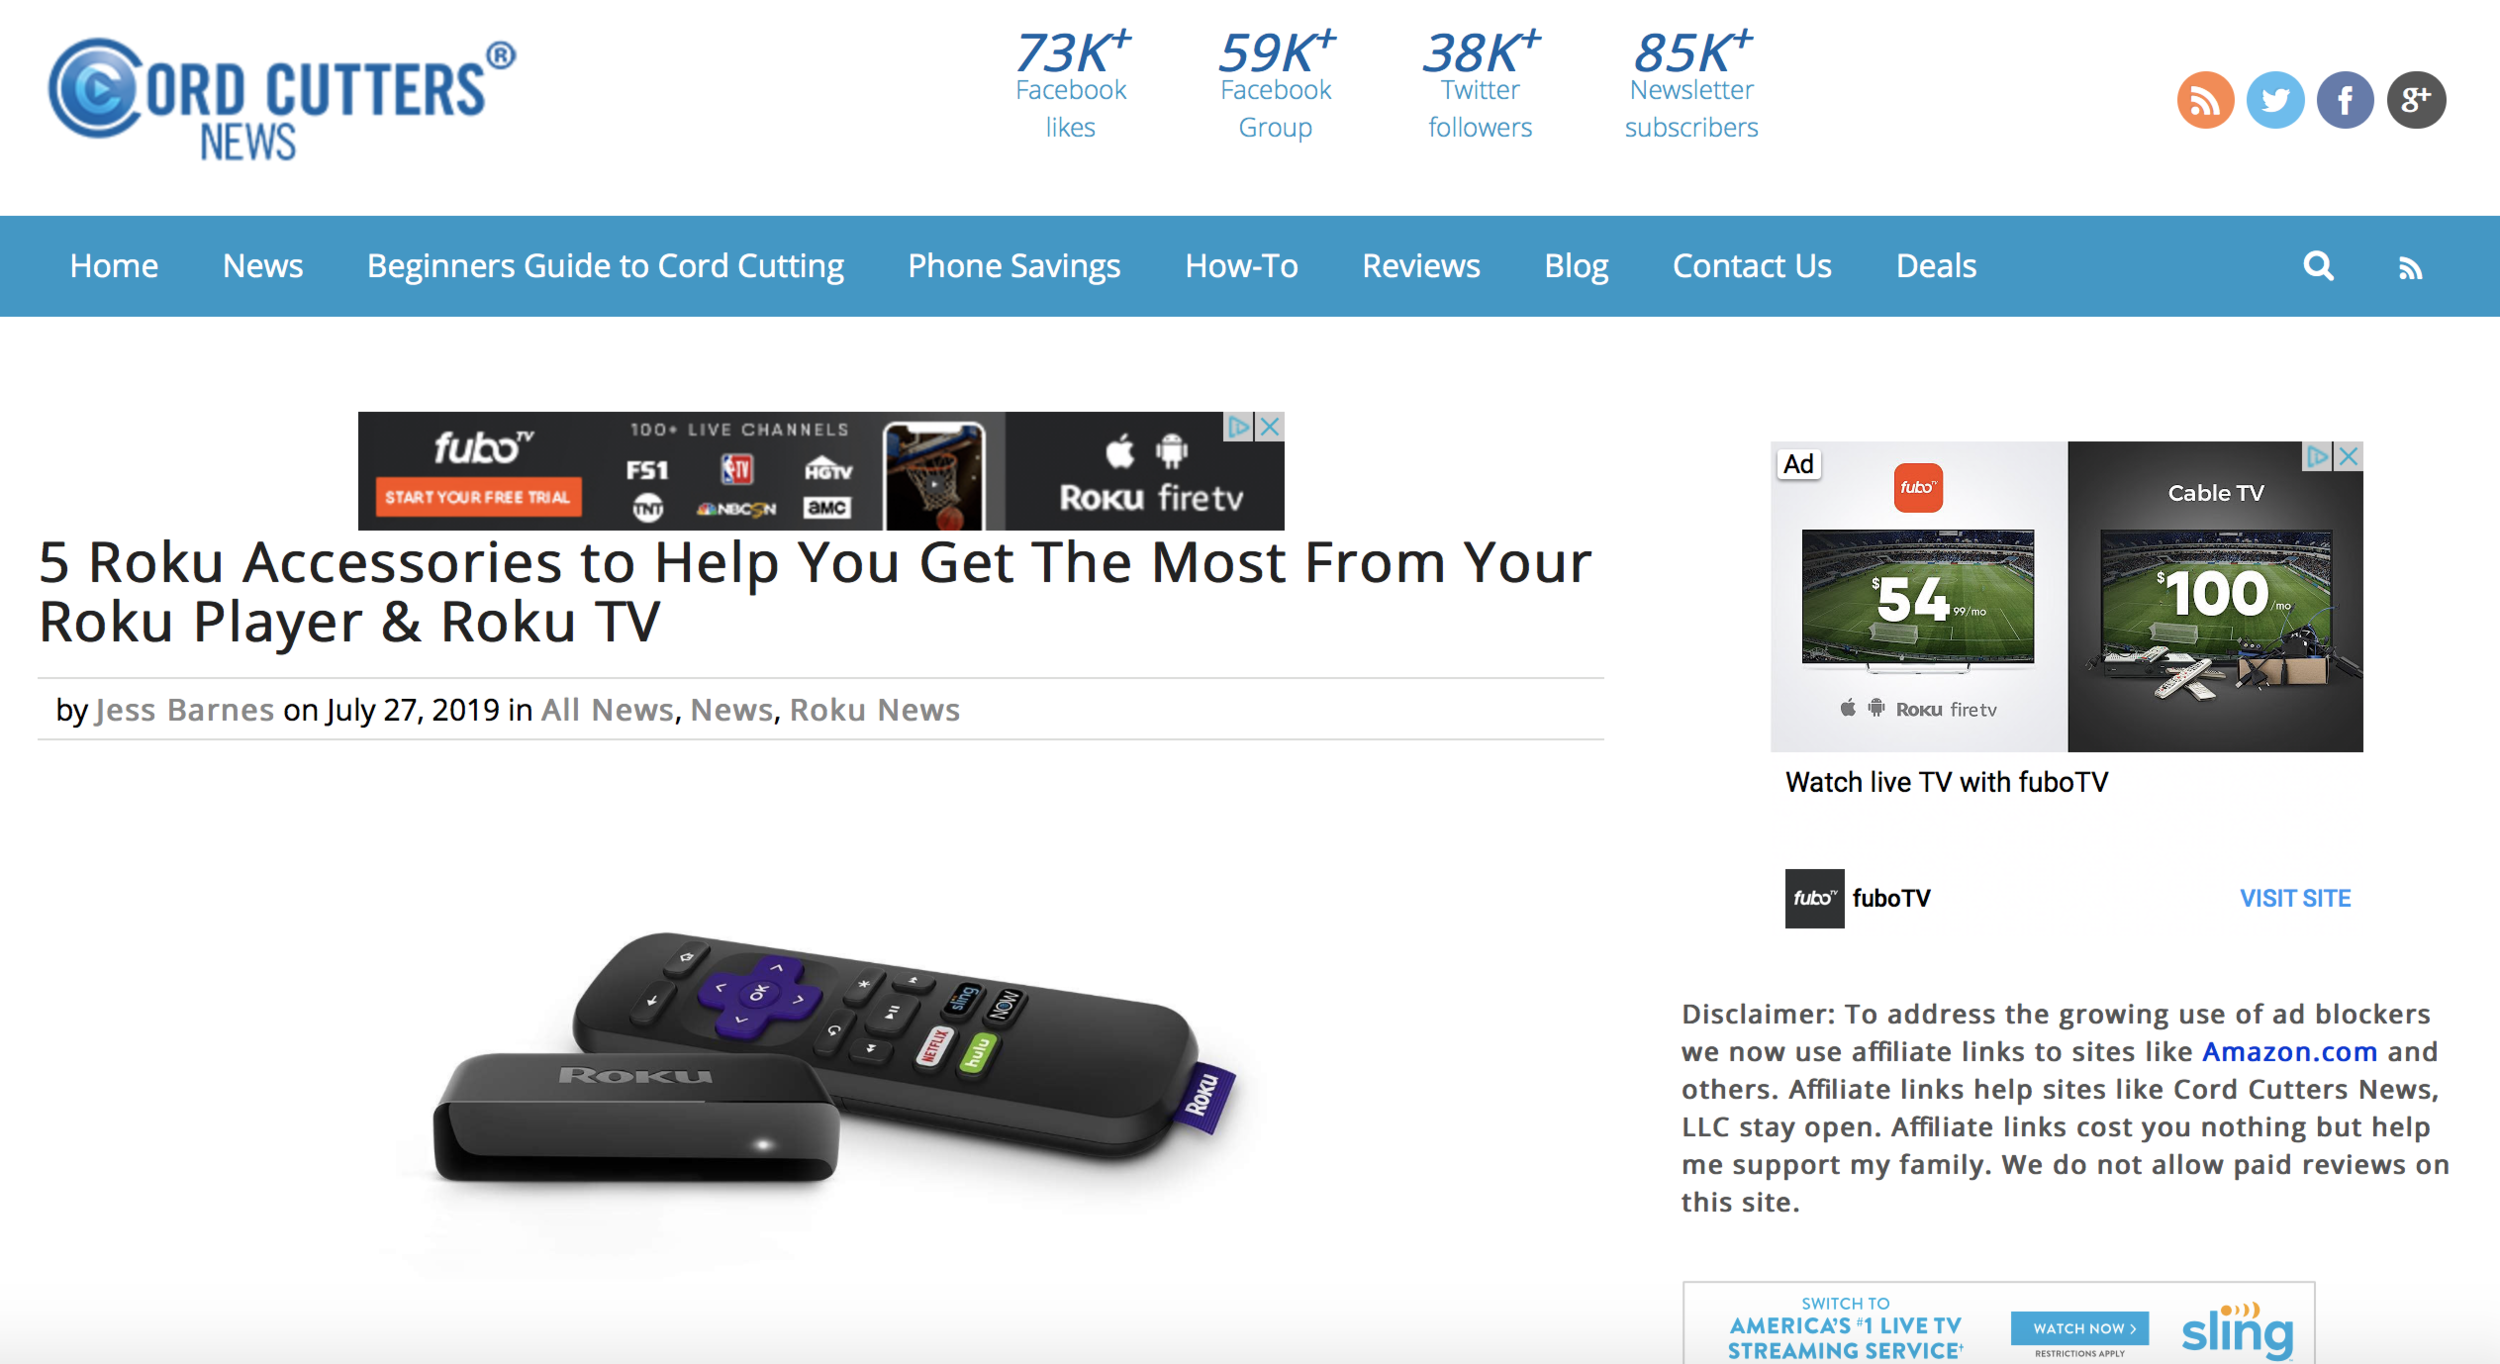 5 Roku Accessories to Help You Get the Most From Your Roku Player || Cord Cutters News